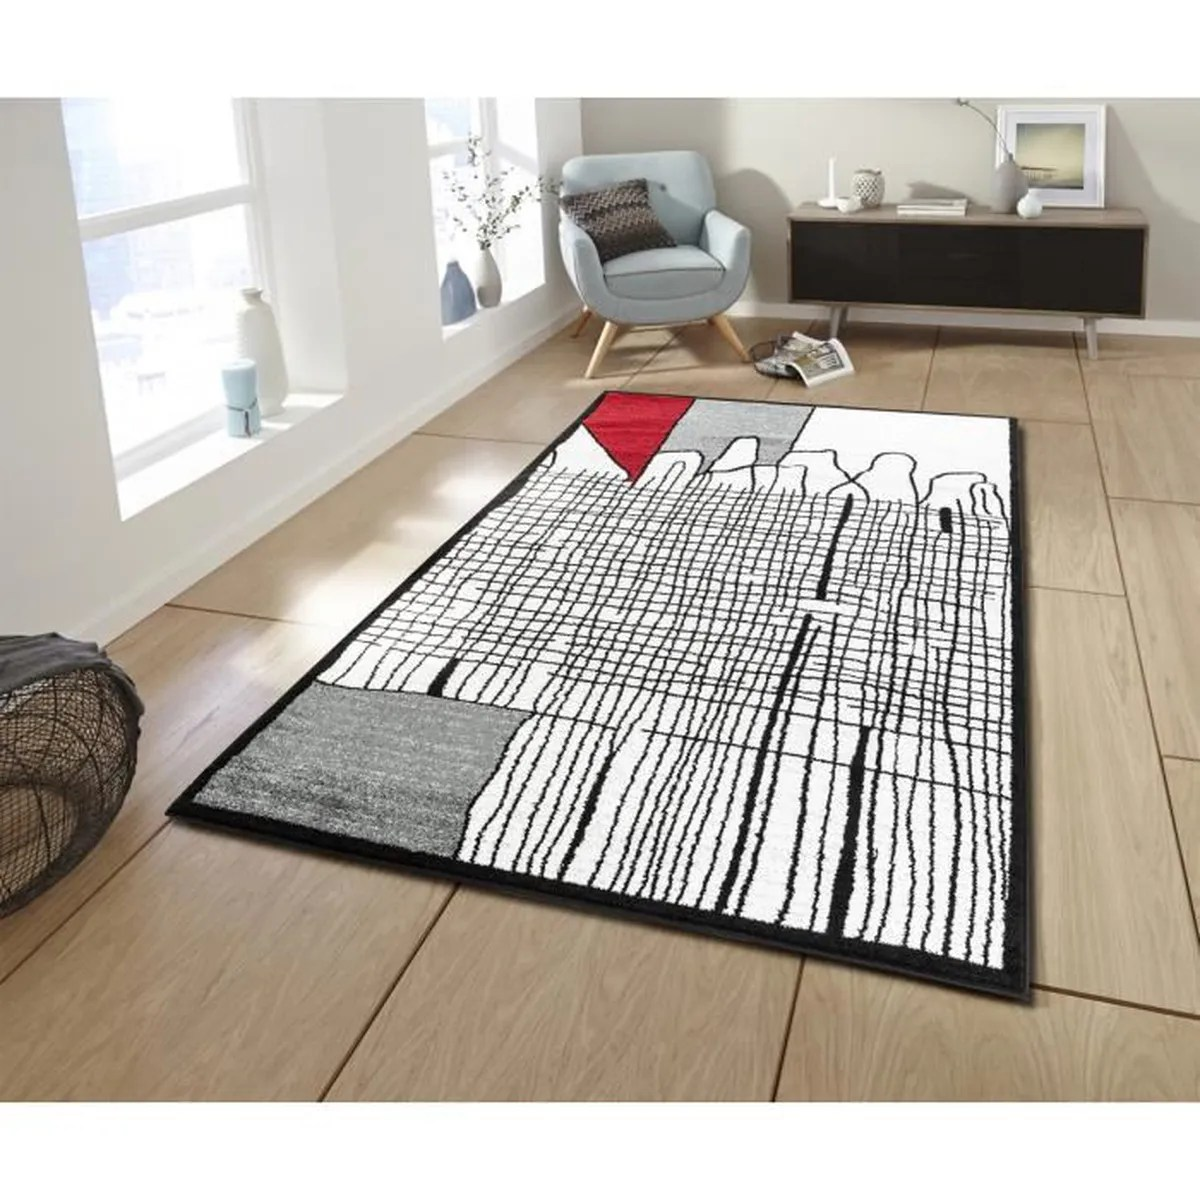 Tapis Salon Cali Tapis De Salon Graphique 160 X 230 Cm Rouge